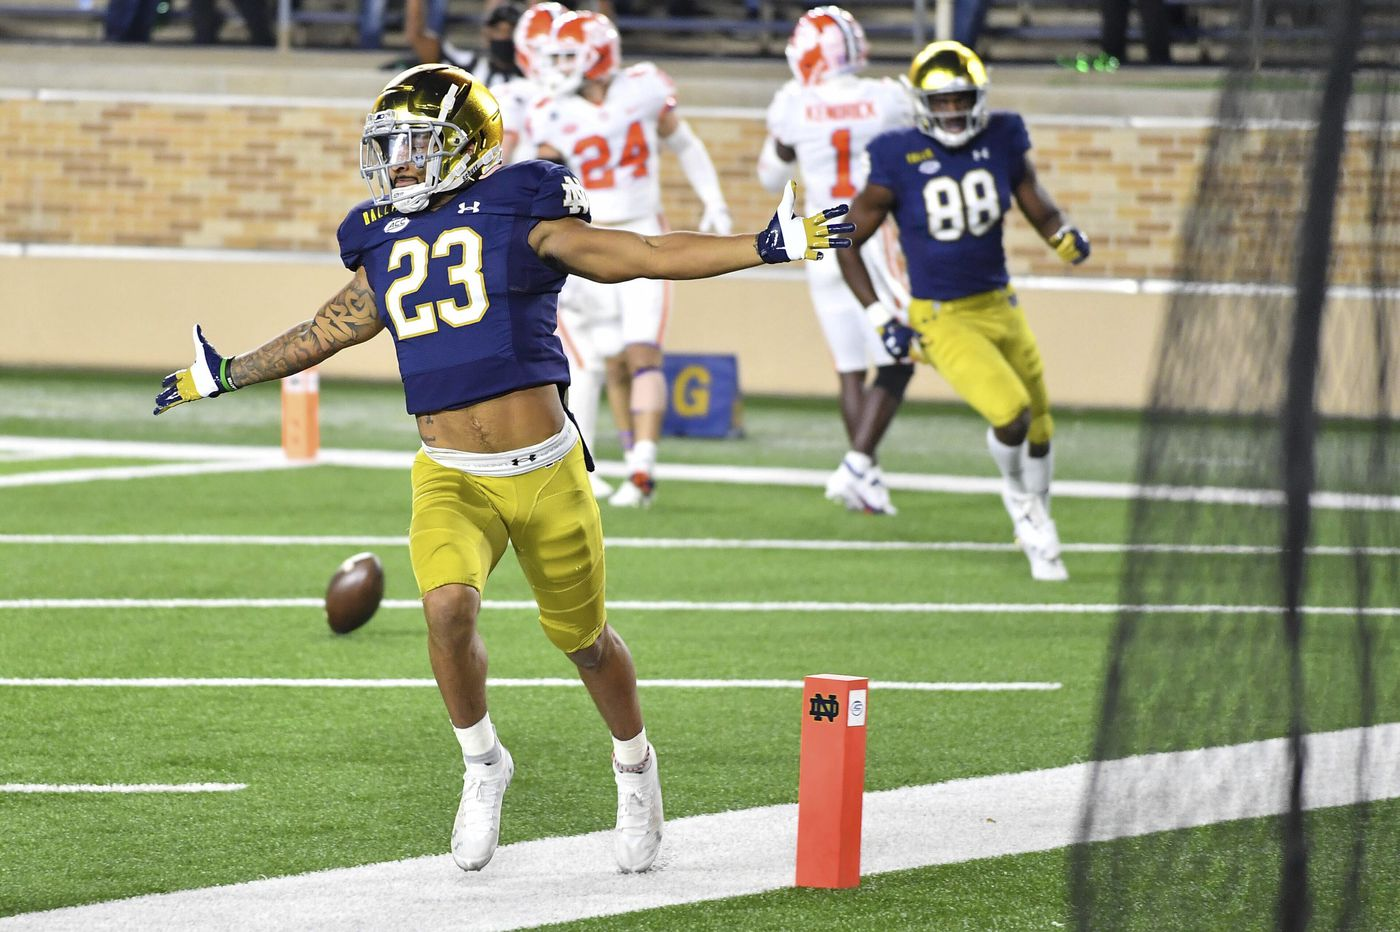 Can Notre Dame stay unbeaten after last week's emotional win over Clemson? | College Football Games to Watch